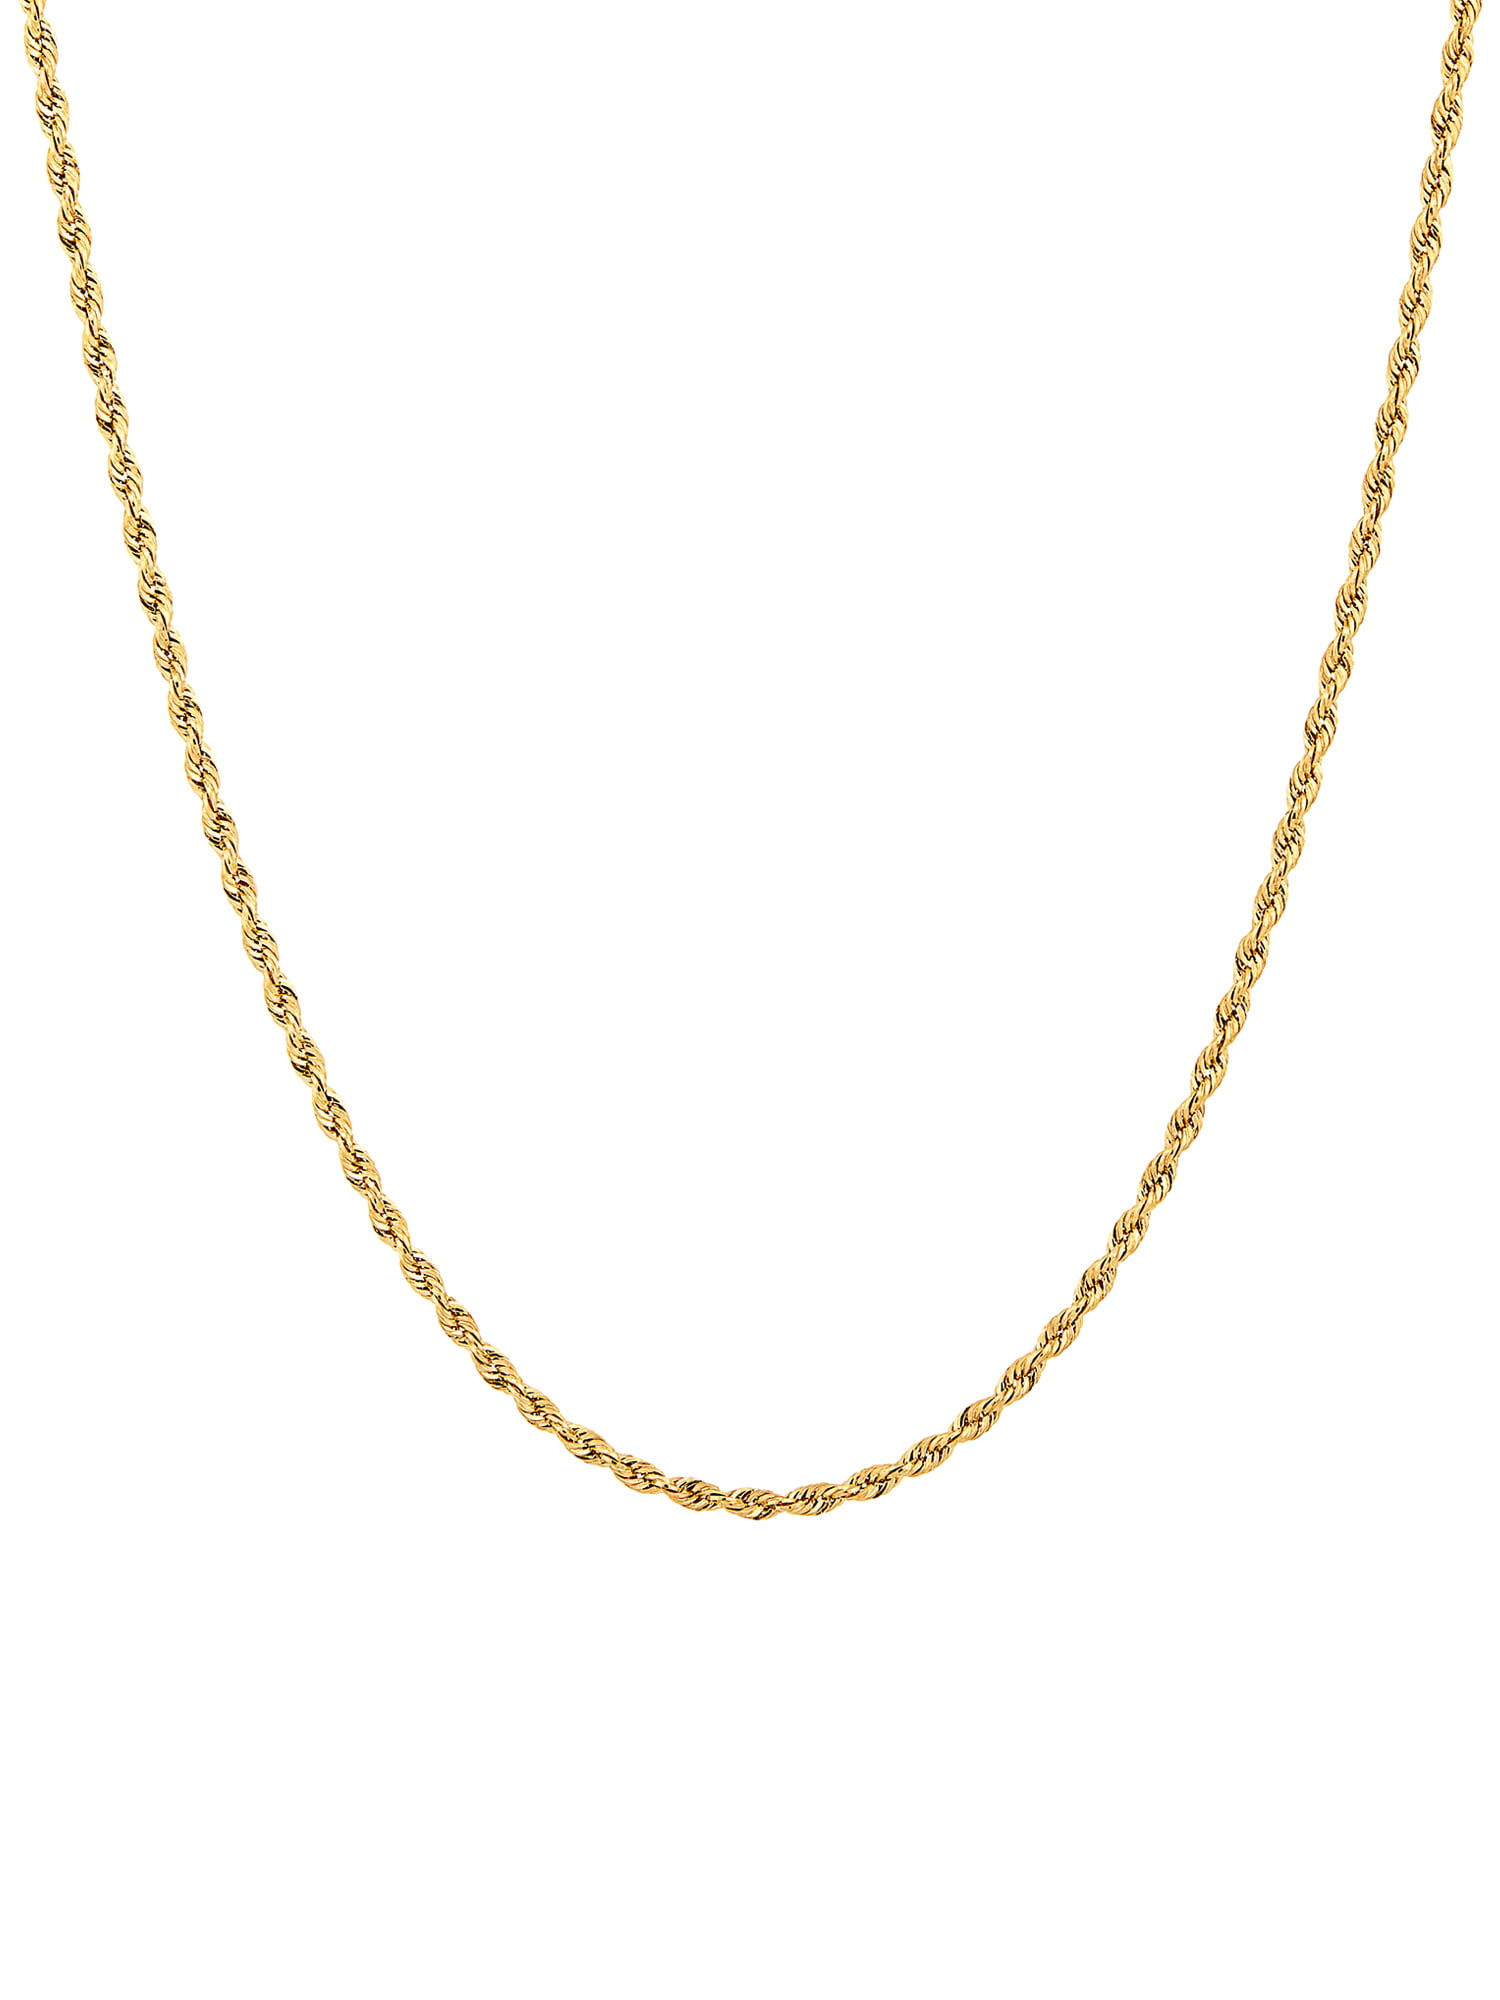 10k Yellow Gold Ballet Slipper Charm With Lobster Claw Clasp Charms for Bracelets and Necklaces